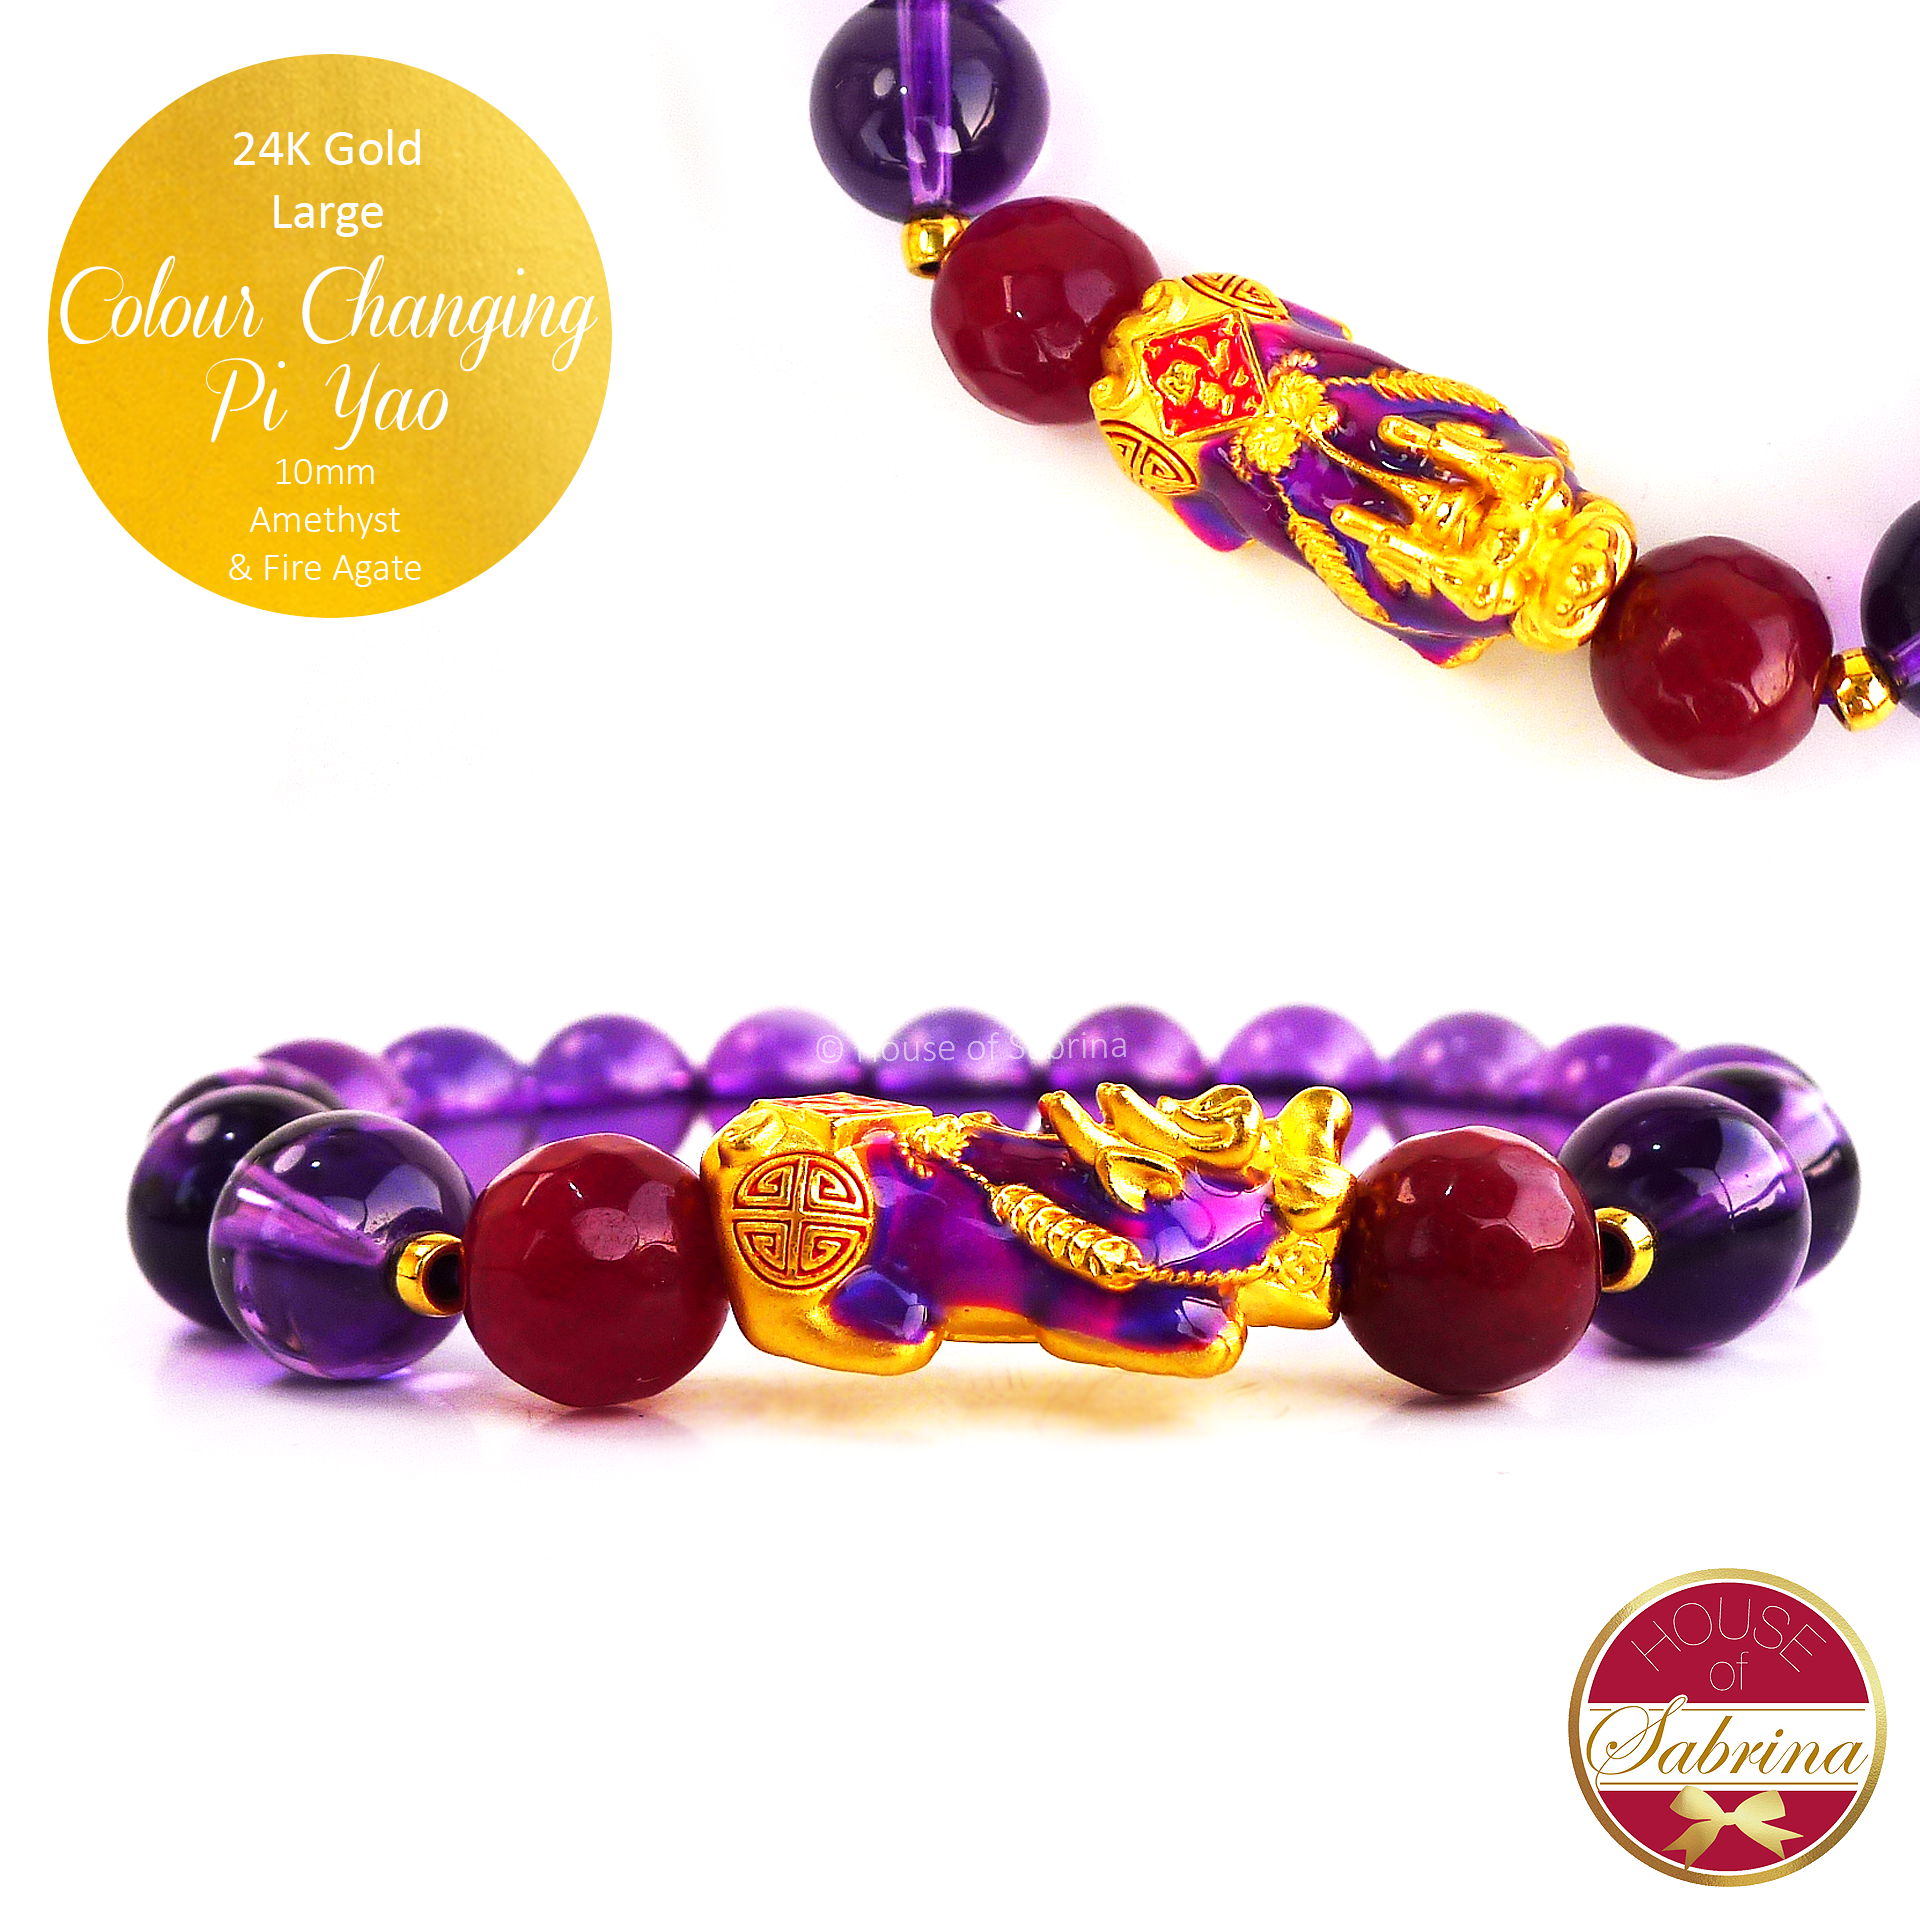 24K Gold Large Colour Changing Pi Yao on High Grade Amethyst and Red Agate Gemstone Bracelet